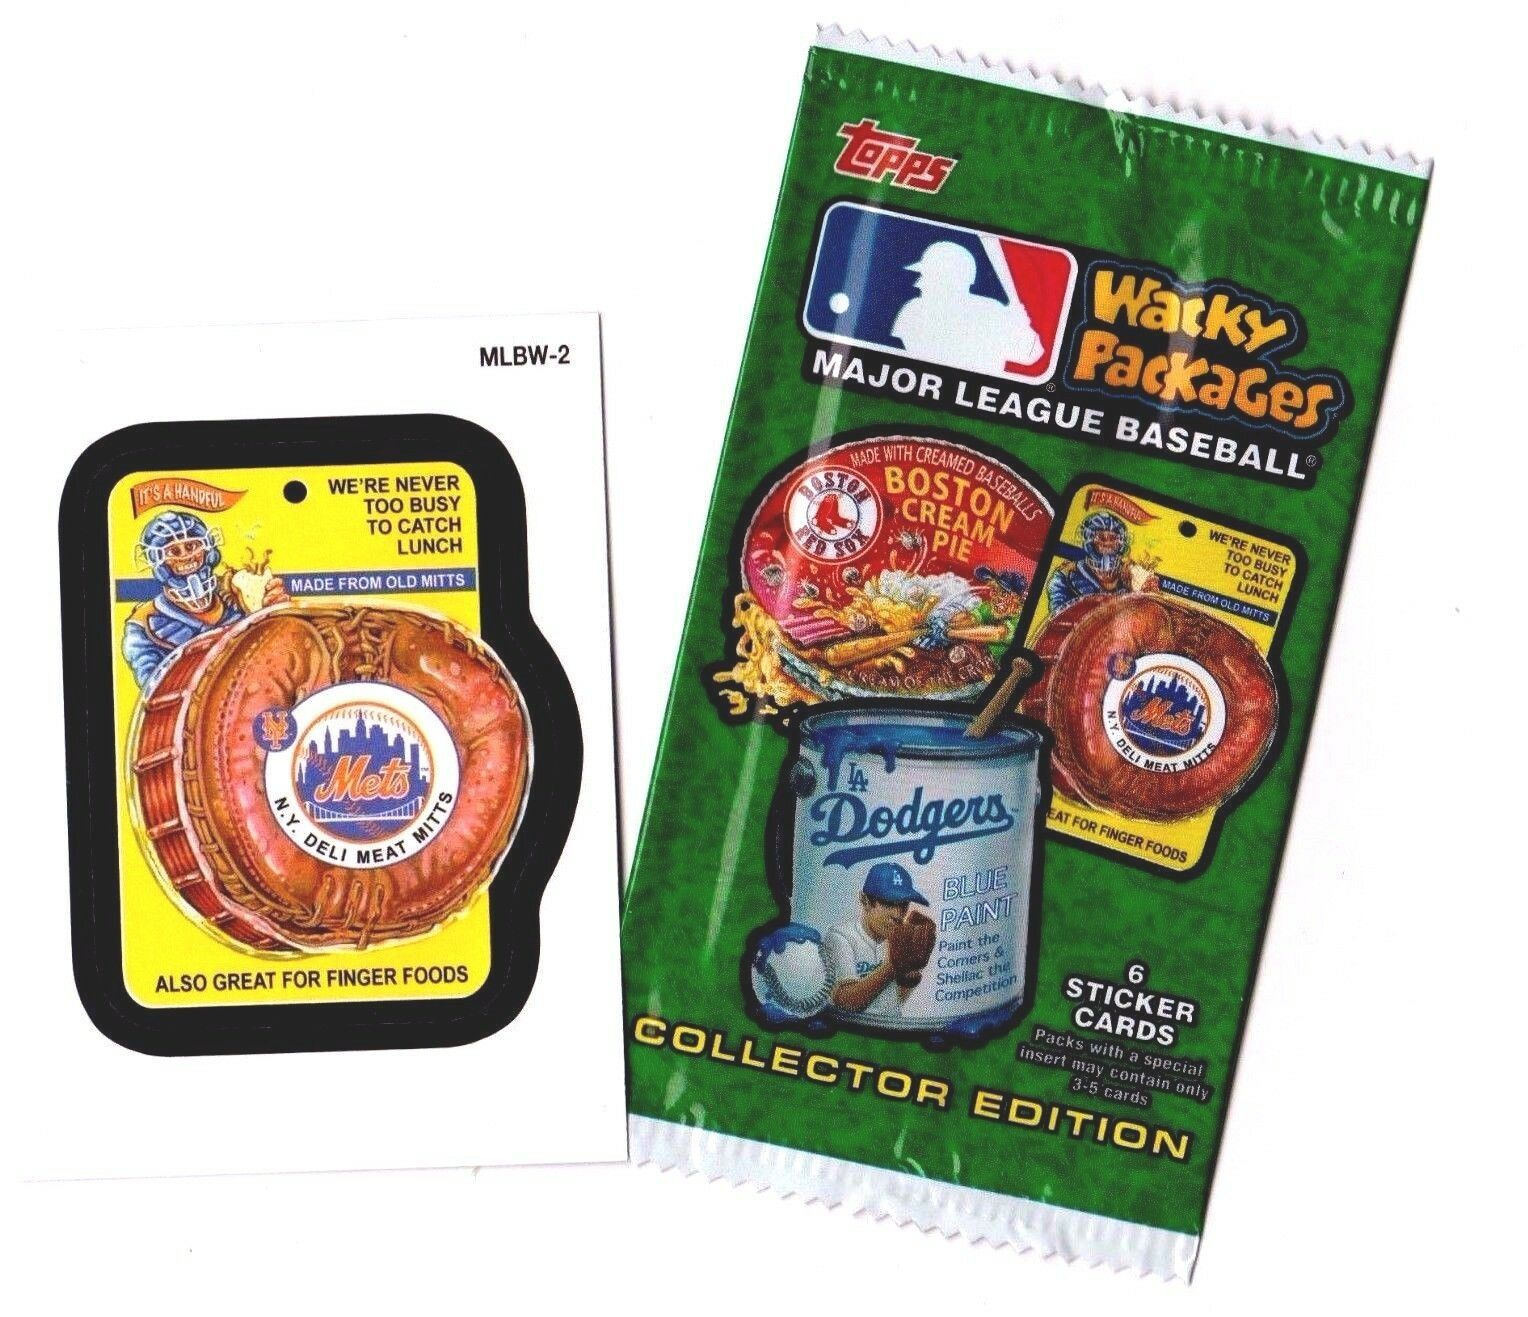 """2016 Wacky Packages Baseball Series 1 """"NY METS DELI MITTS"""" Promo Sticker MLBW-2"""